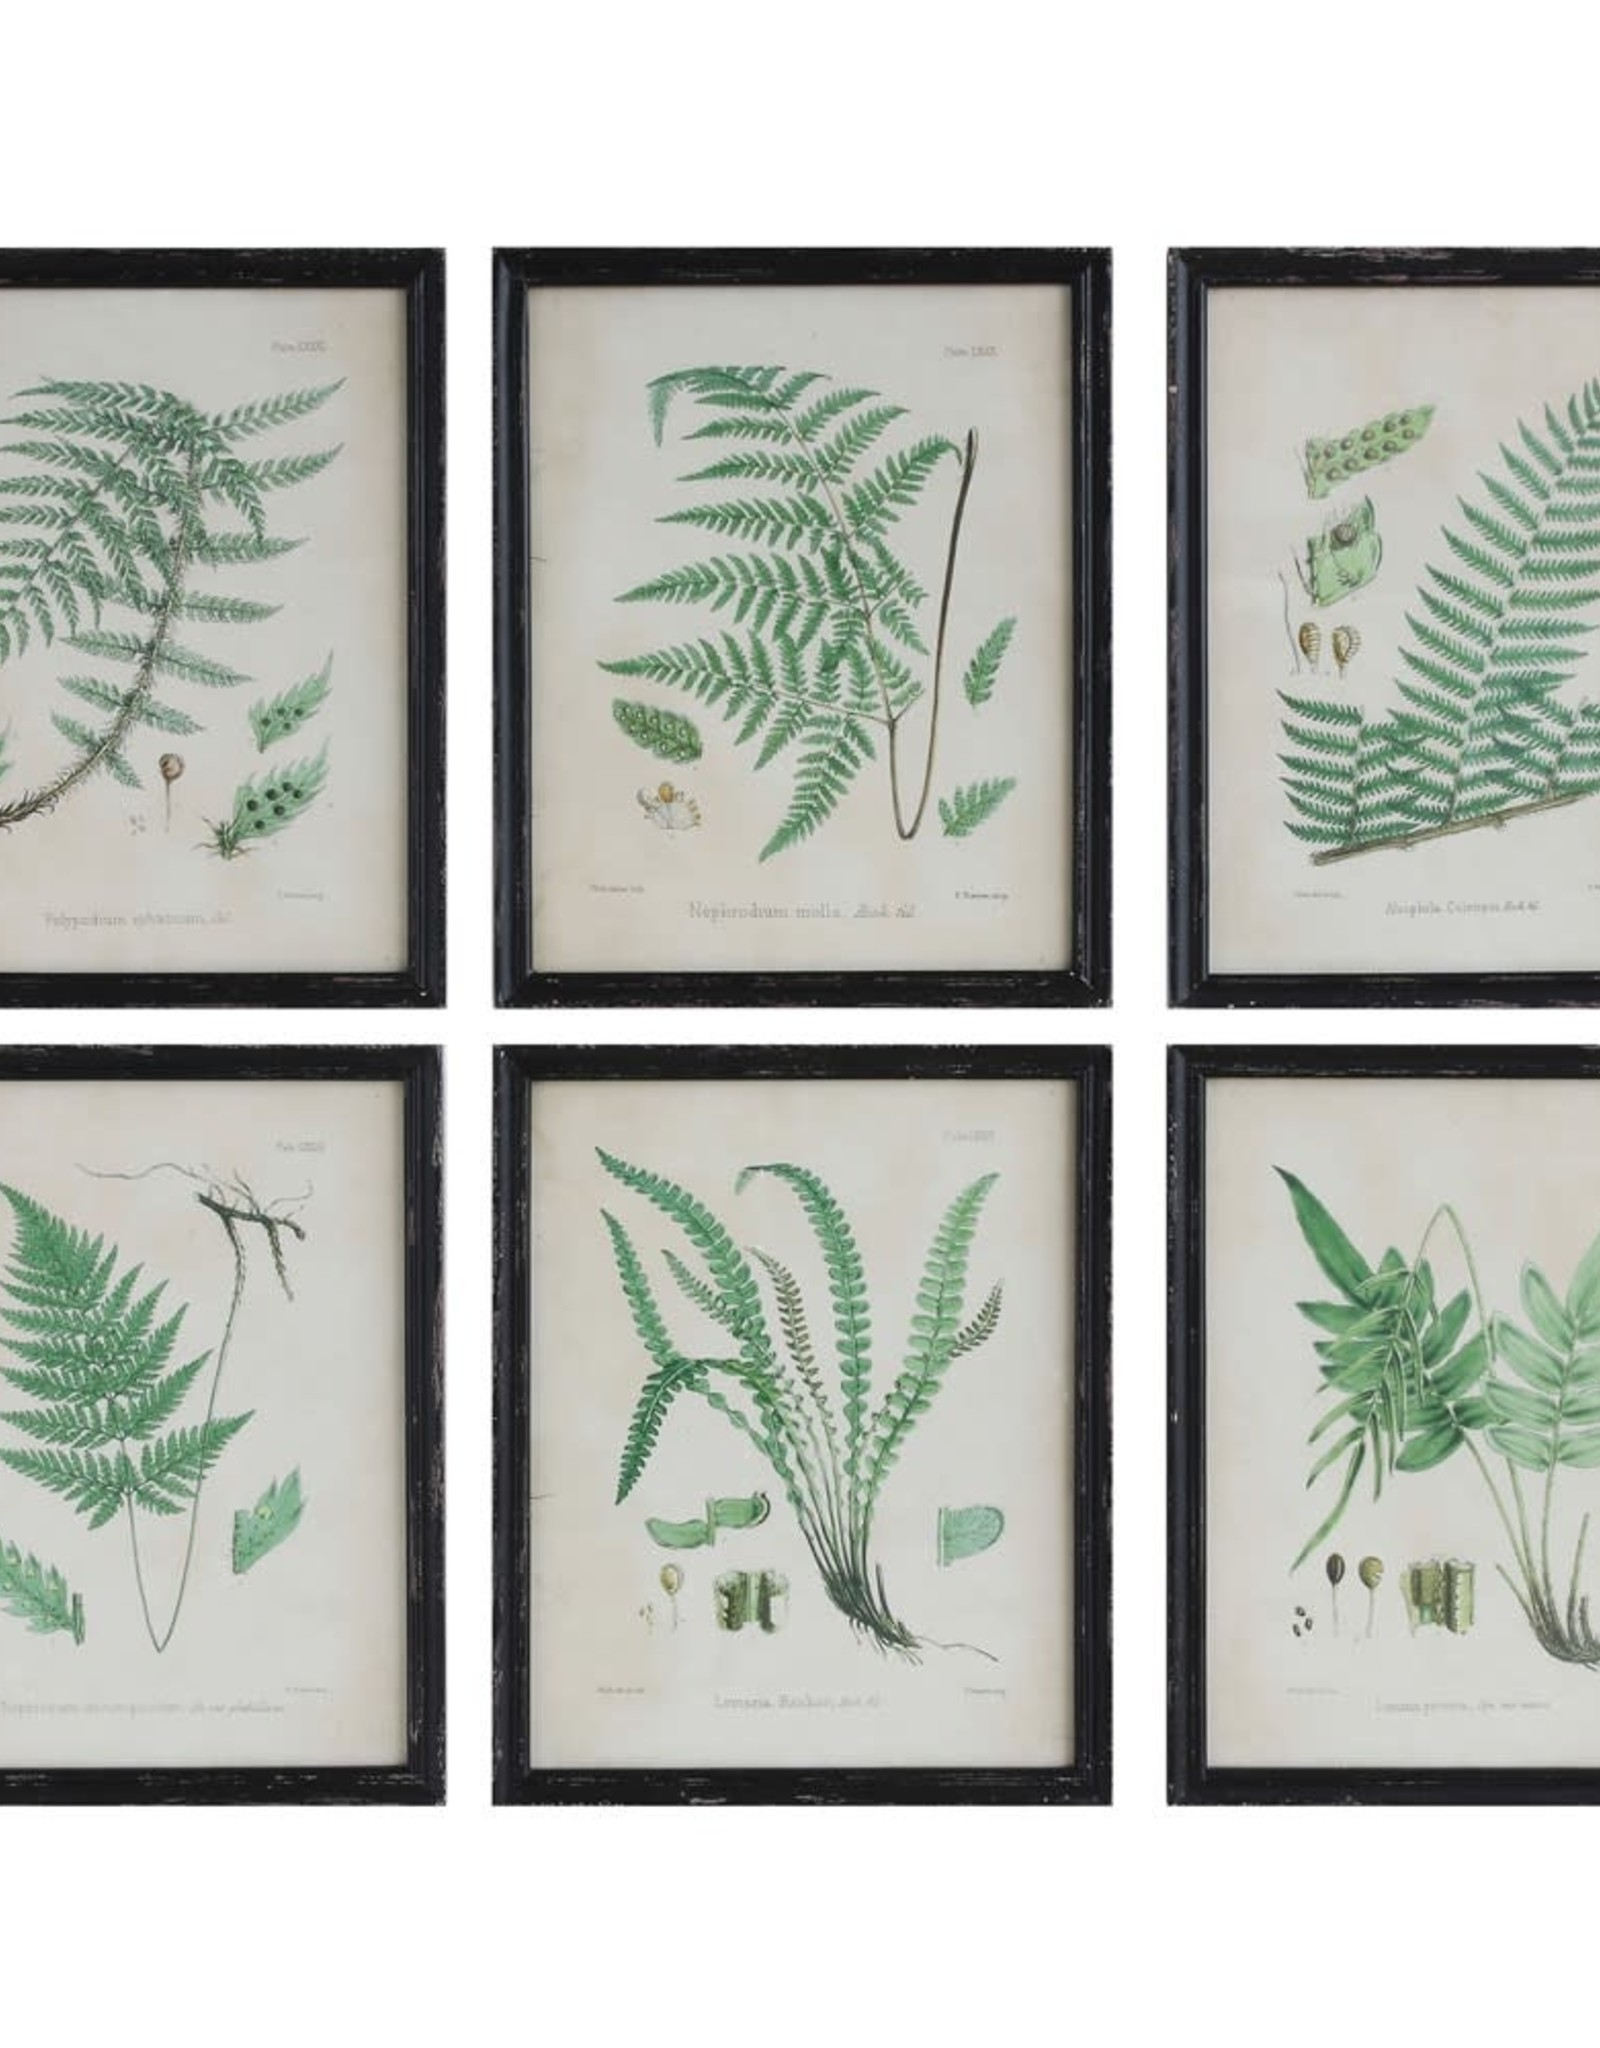 WALL DÉCOR WITH VINTAGE FERN ART AND WOOD FRAME